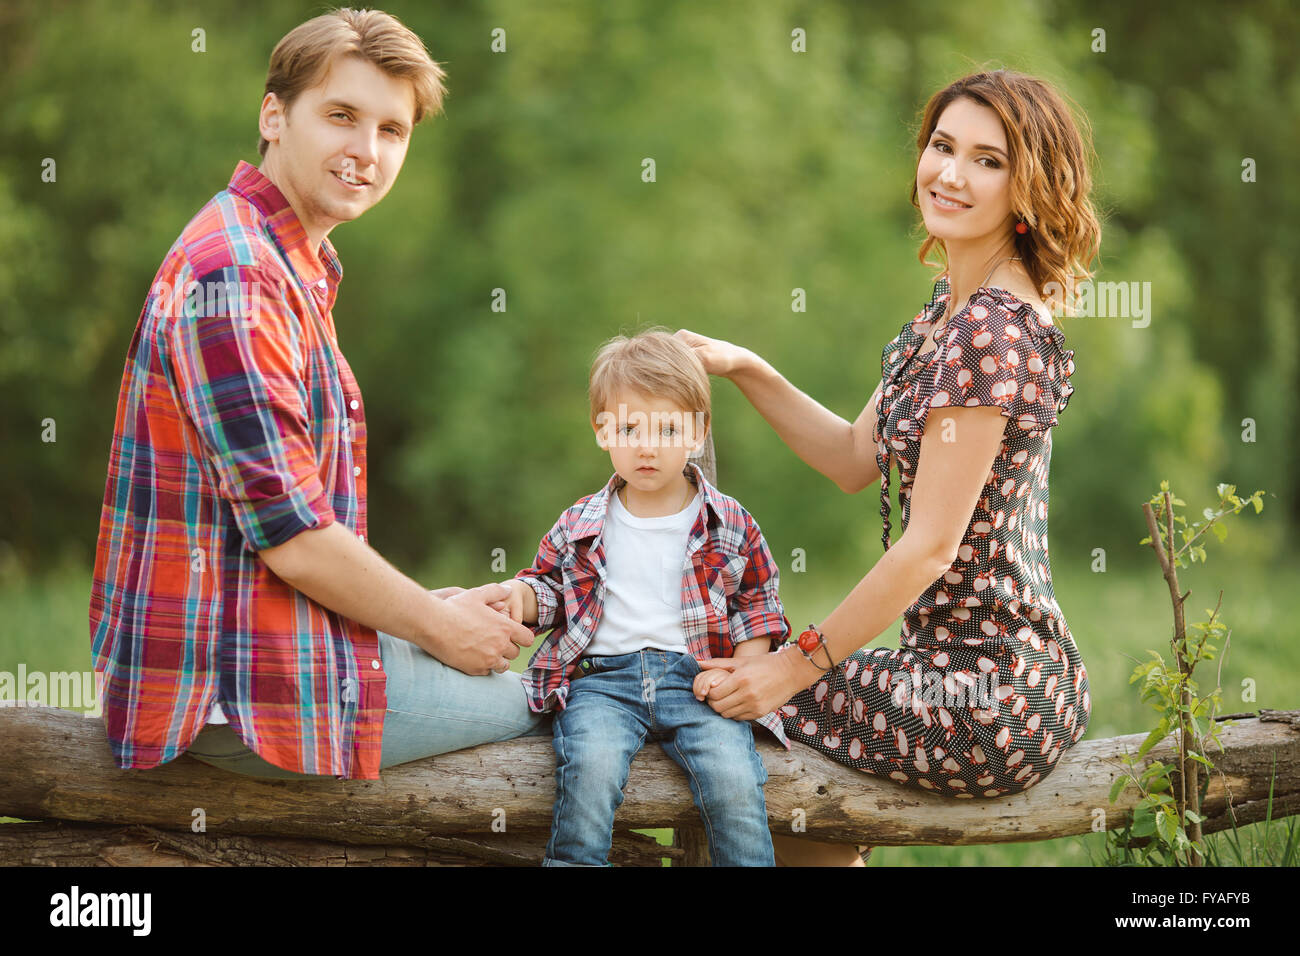 Happy family in a park - Stock Image